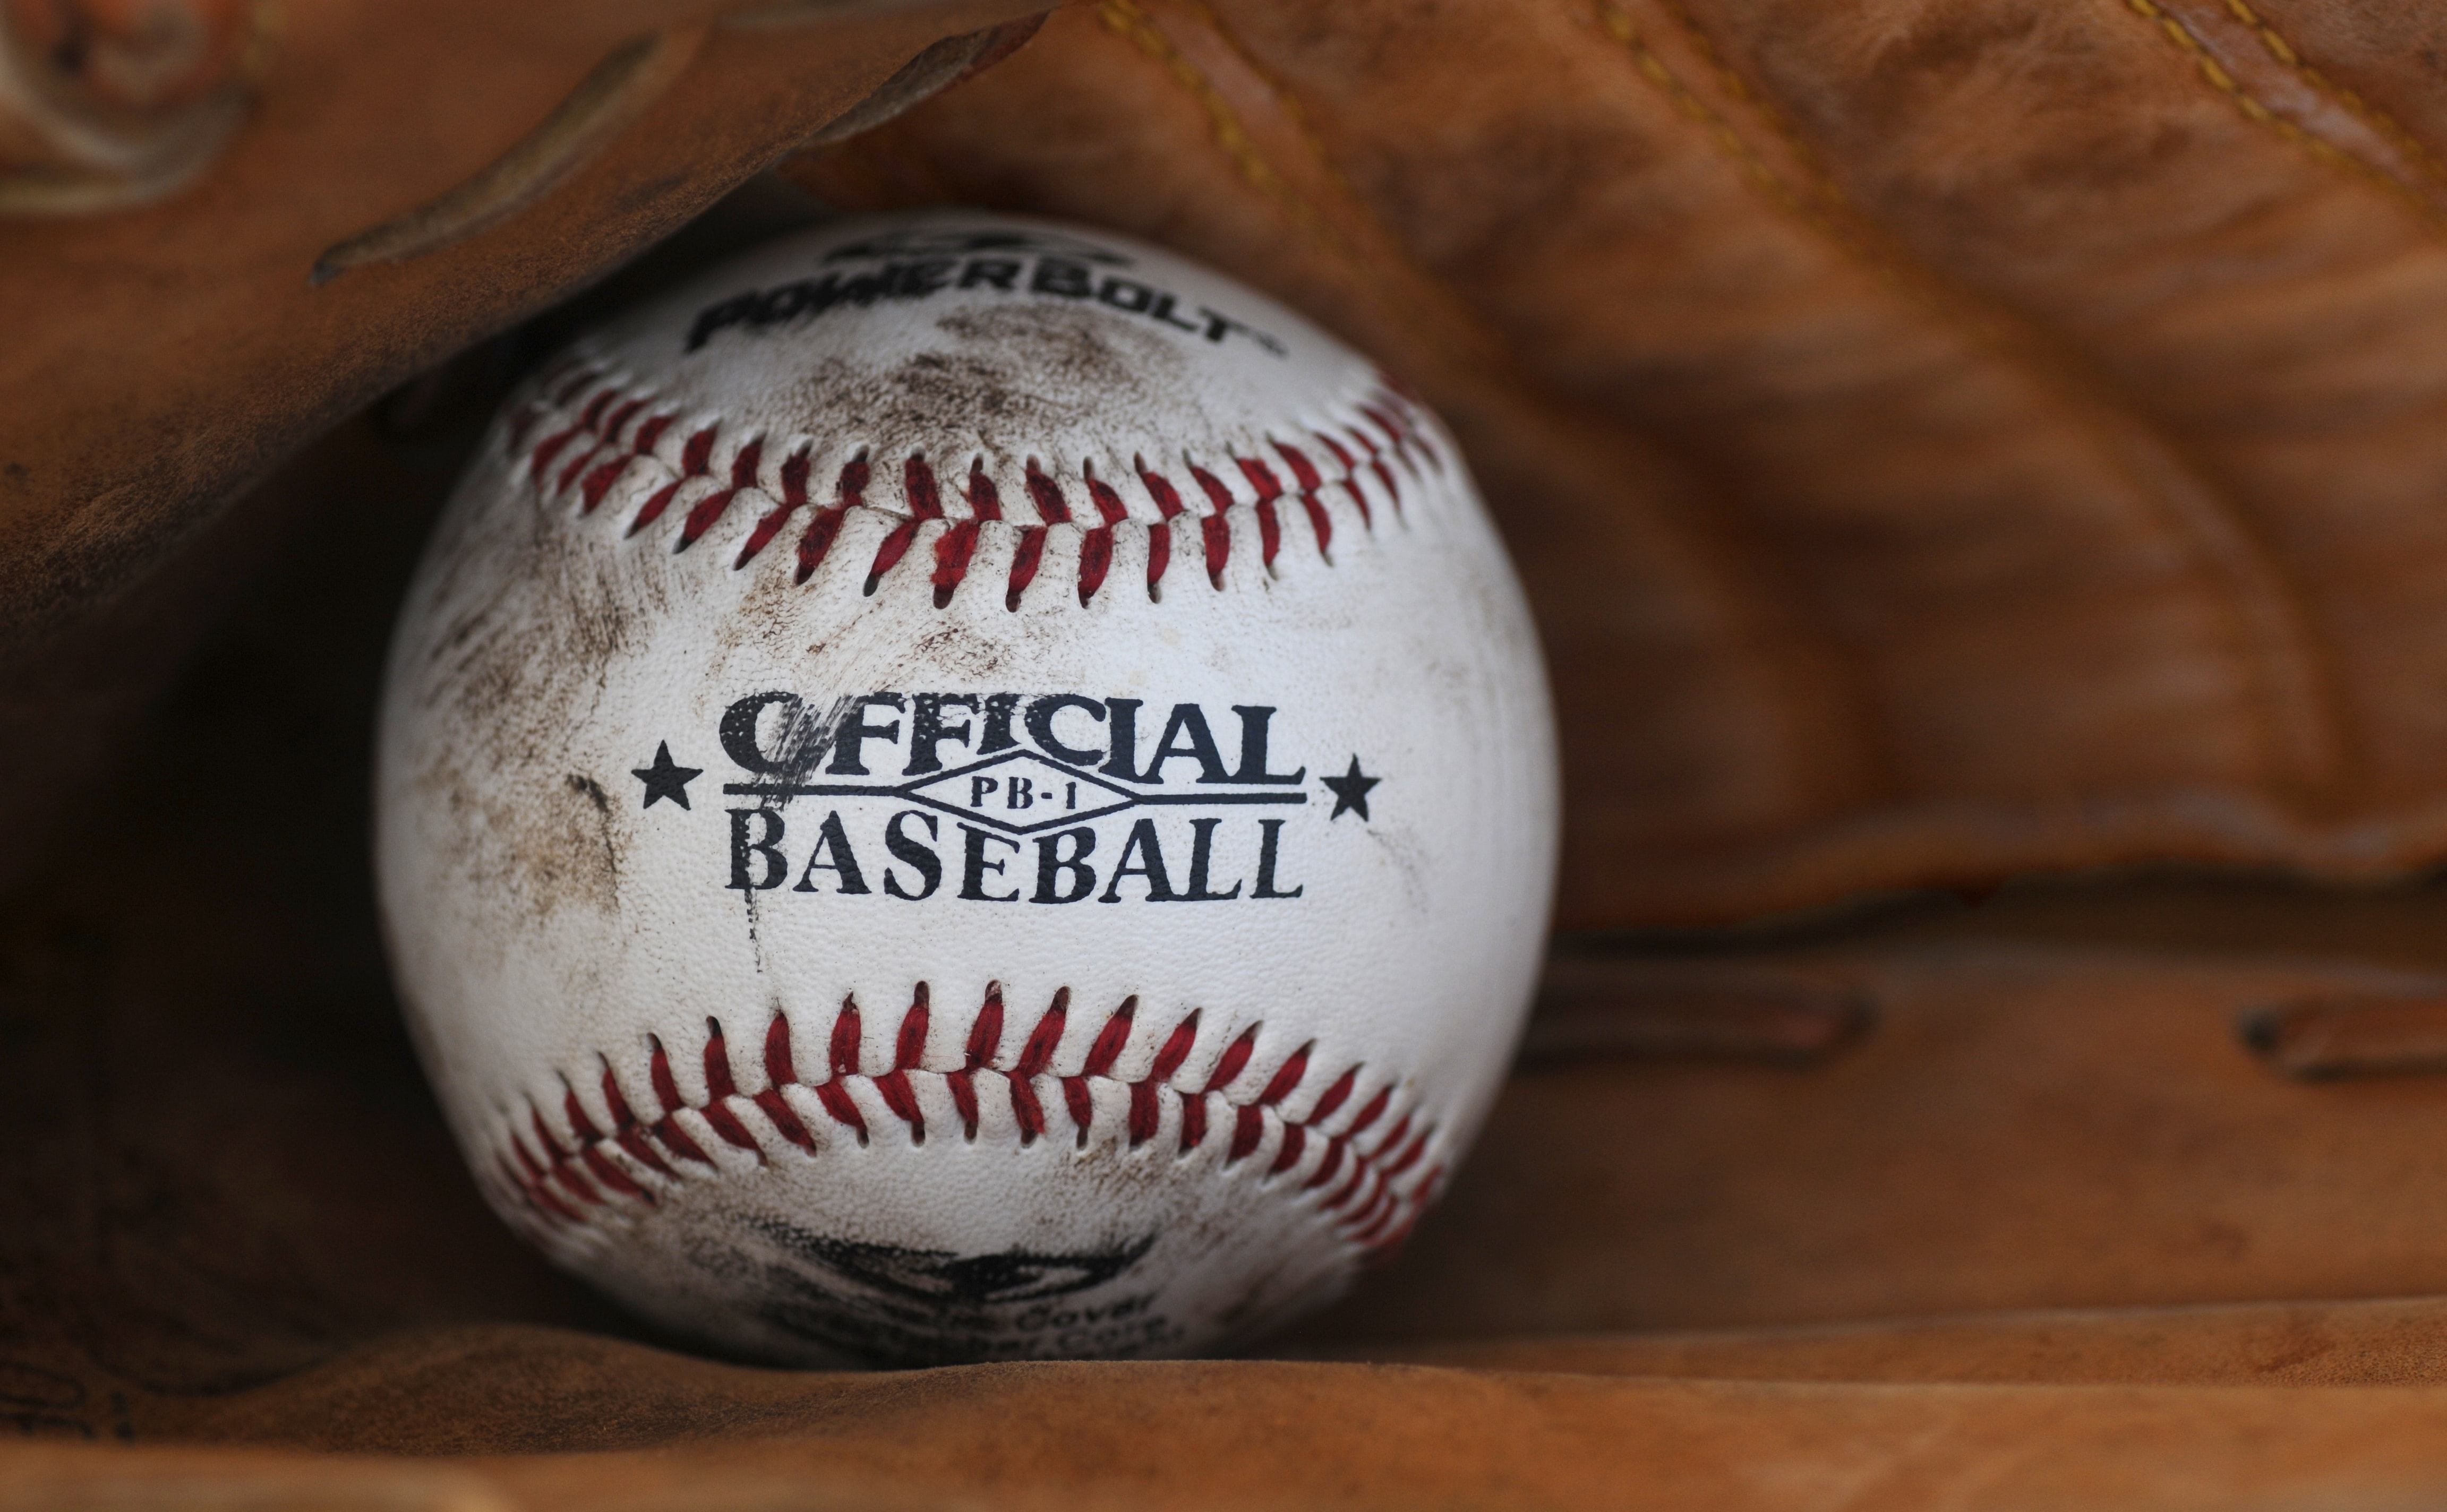 dirt covered Official Baseball ball in person's baseball mitts